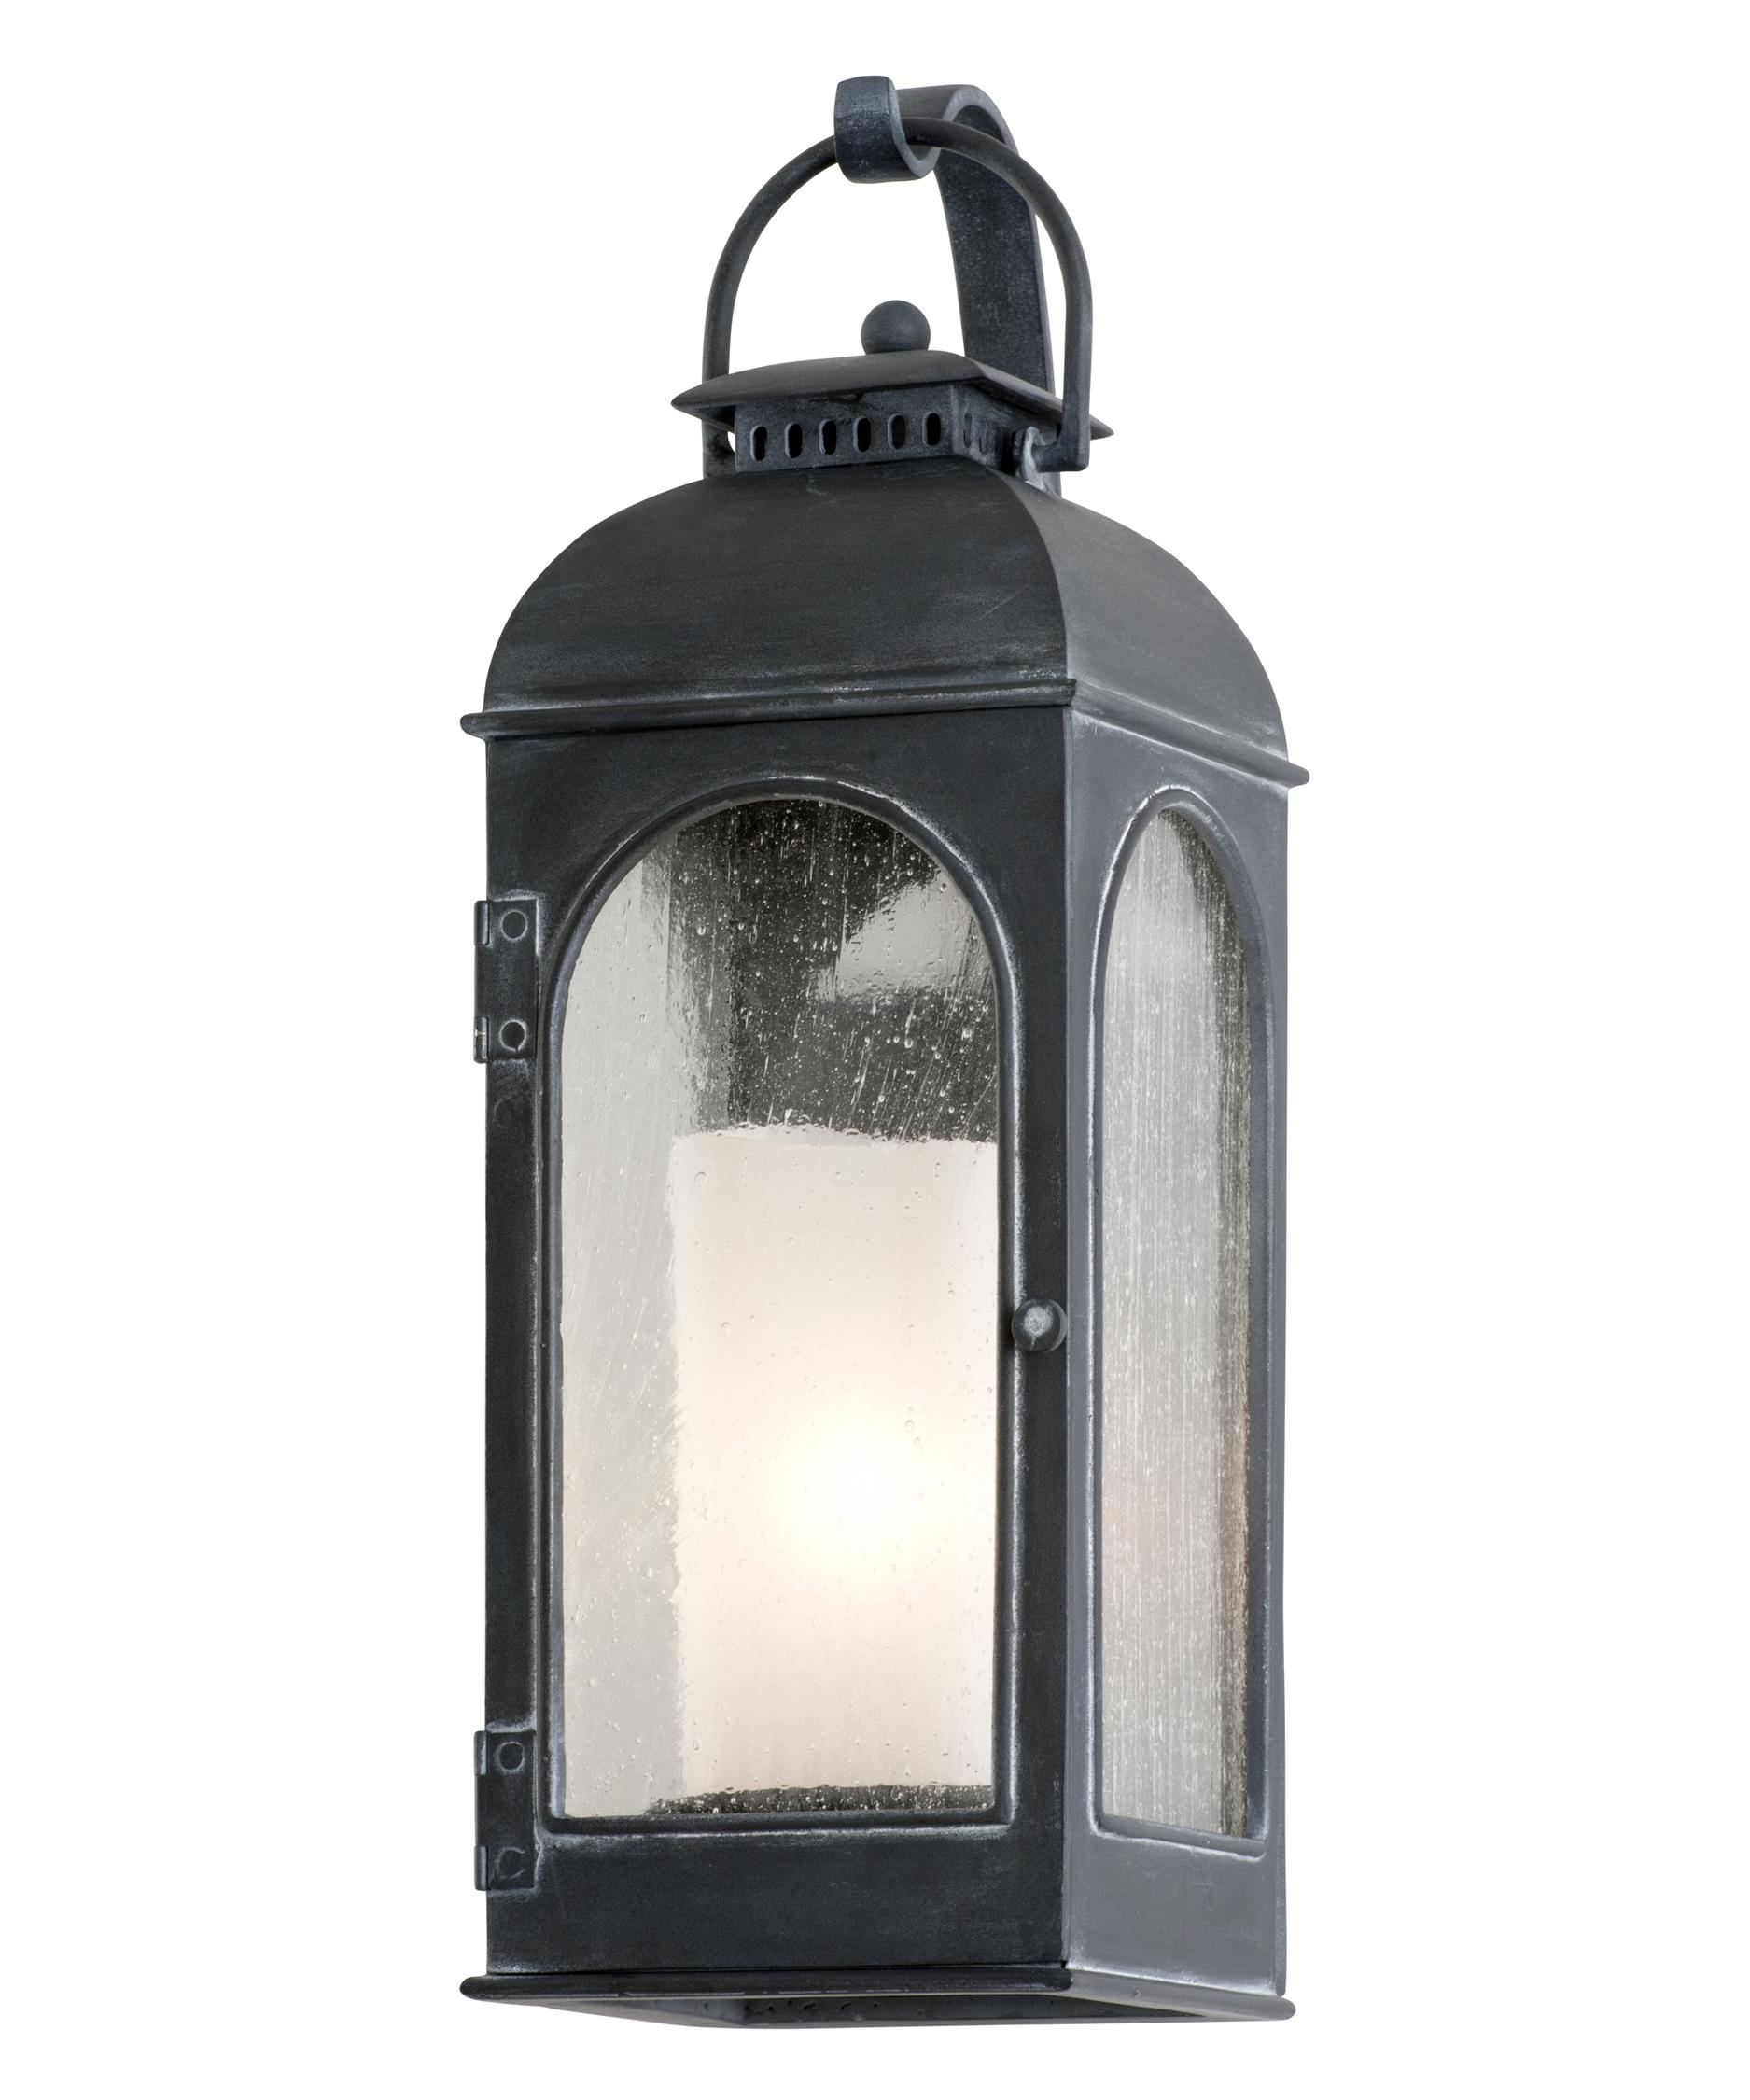 Plastic Lanterns Outdoor Lights Lightingcool Front Porch For Barn in Outdoor Memorial Lanterns (Image 16 of 20)